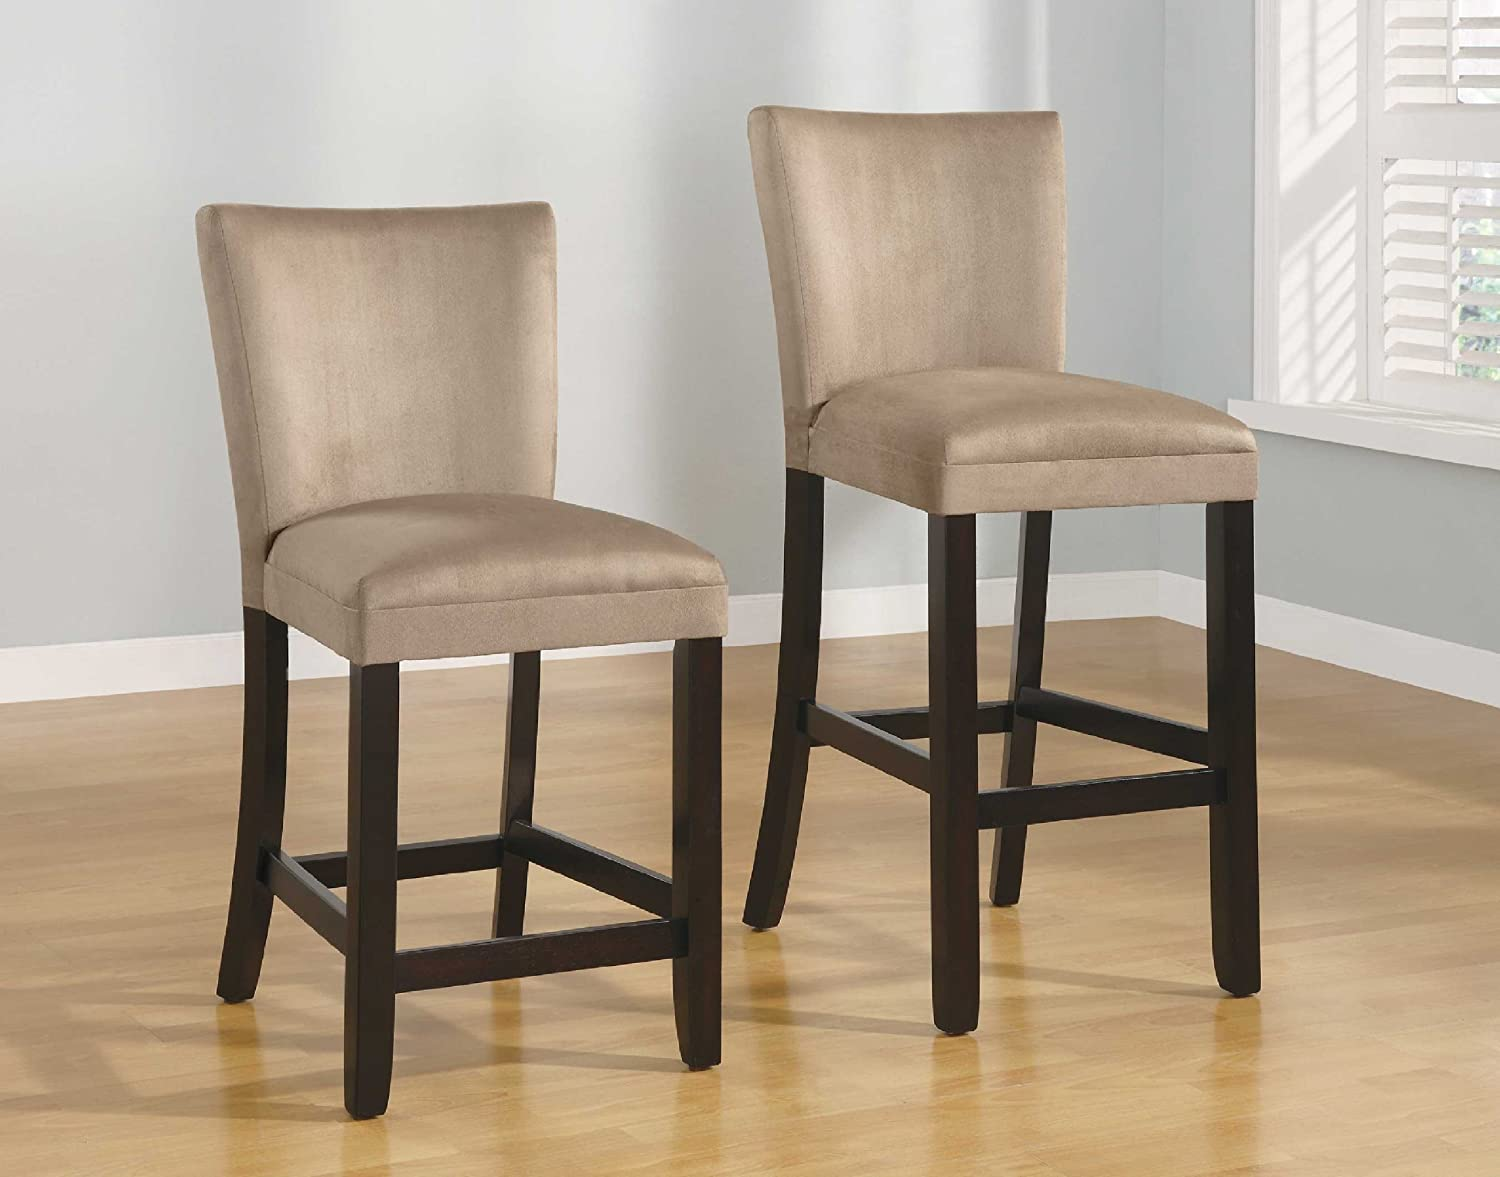 Counter Height Chairs Cheap : Cheap Bar Stools with Back - 2013